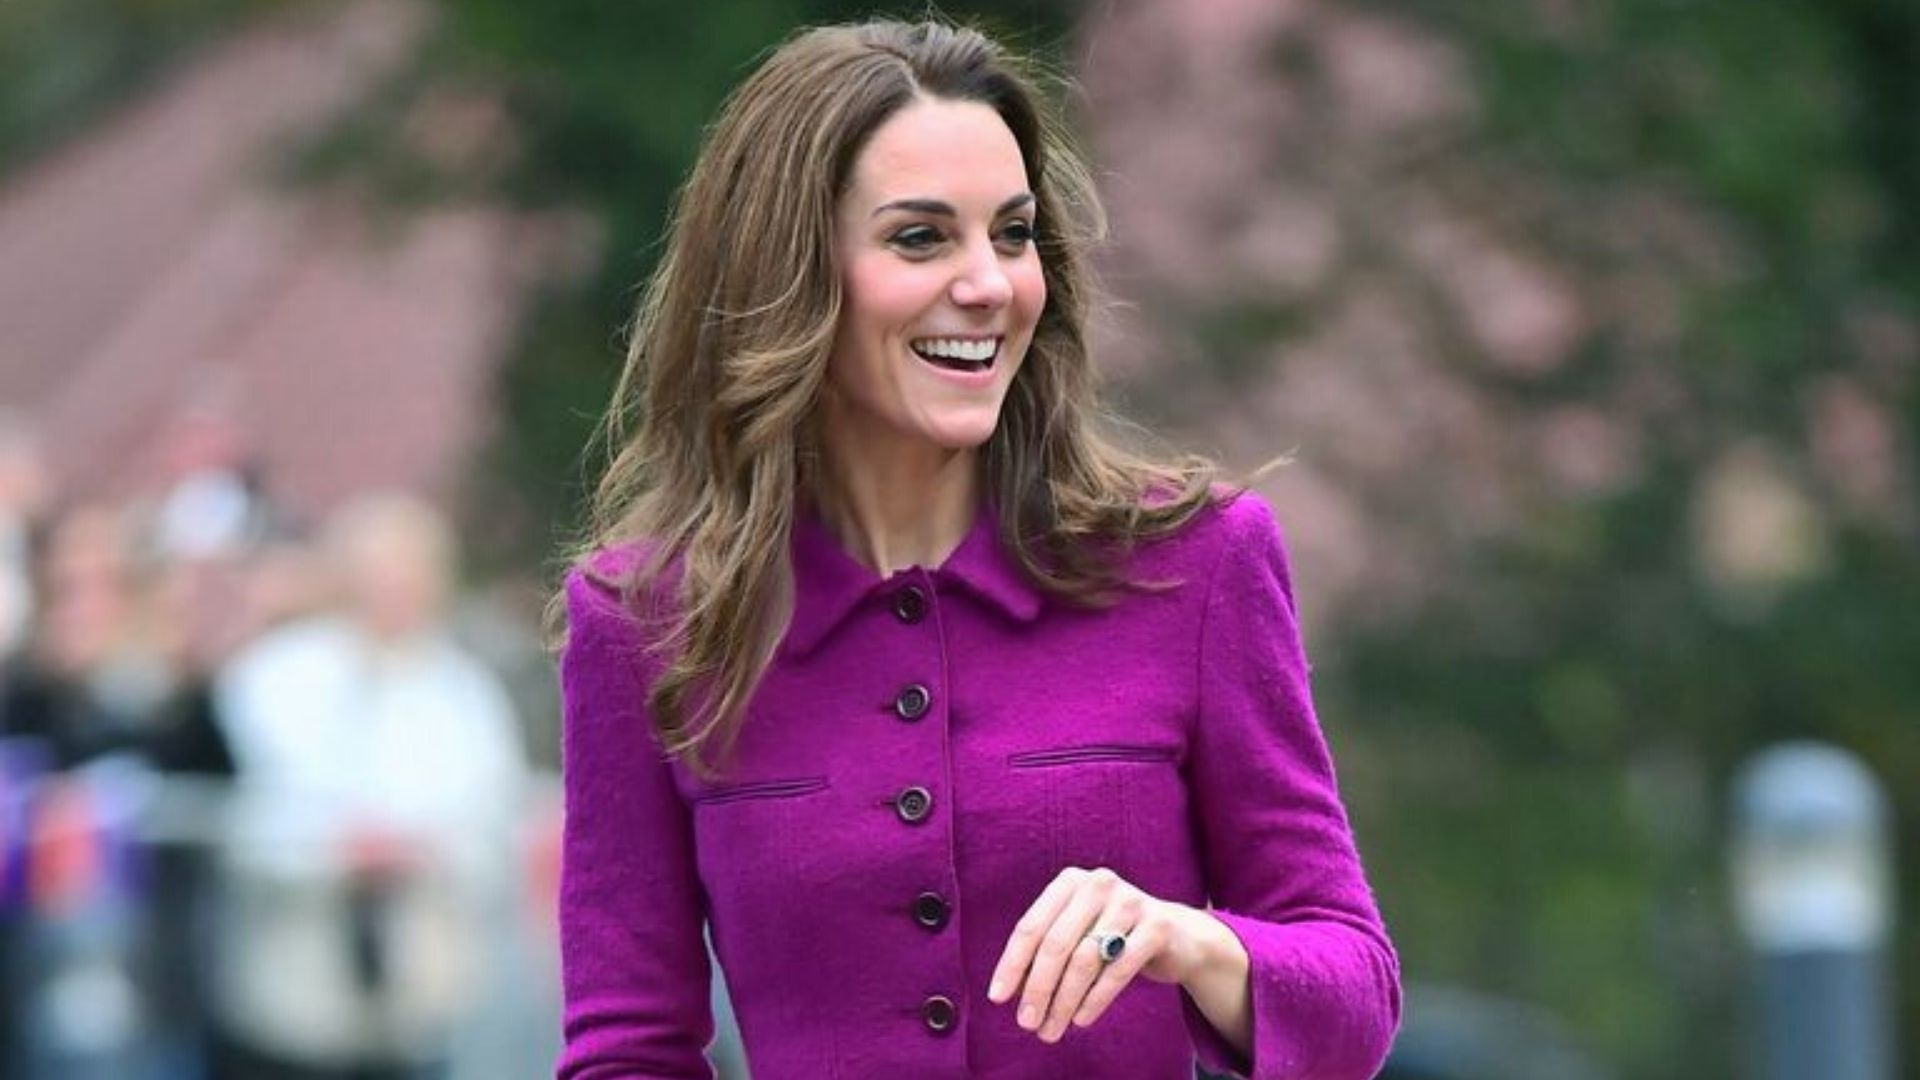 Kate Middleton Just Took The Train Wearing Oscar De La Renta